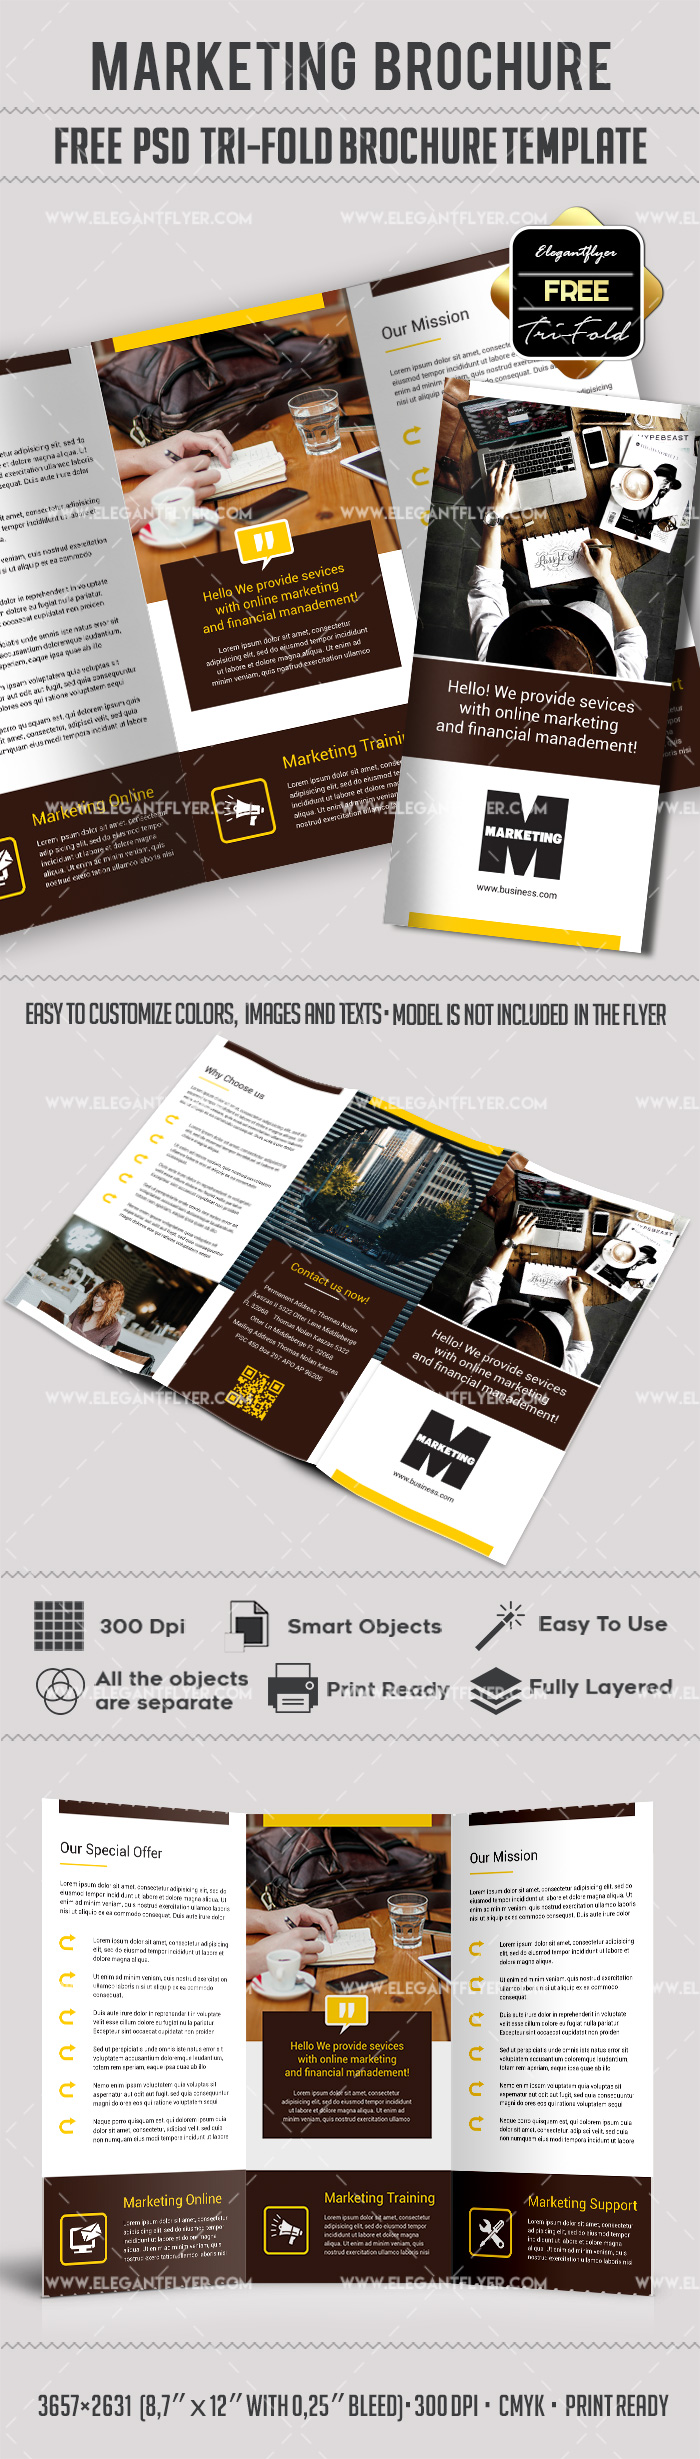 Marketing free tri fold psd brochure template by for Free tri fold brochure design templates